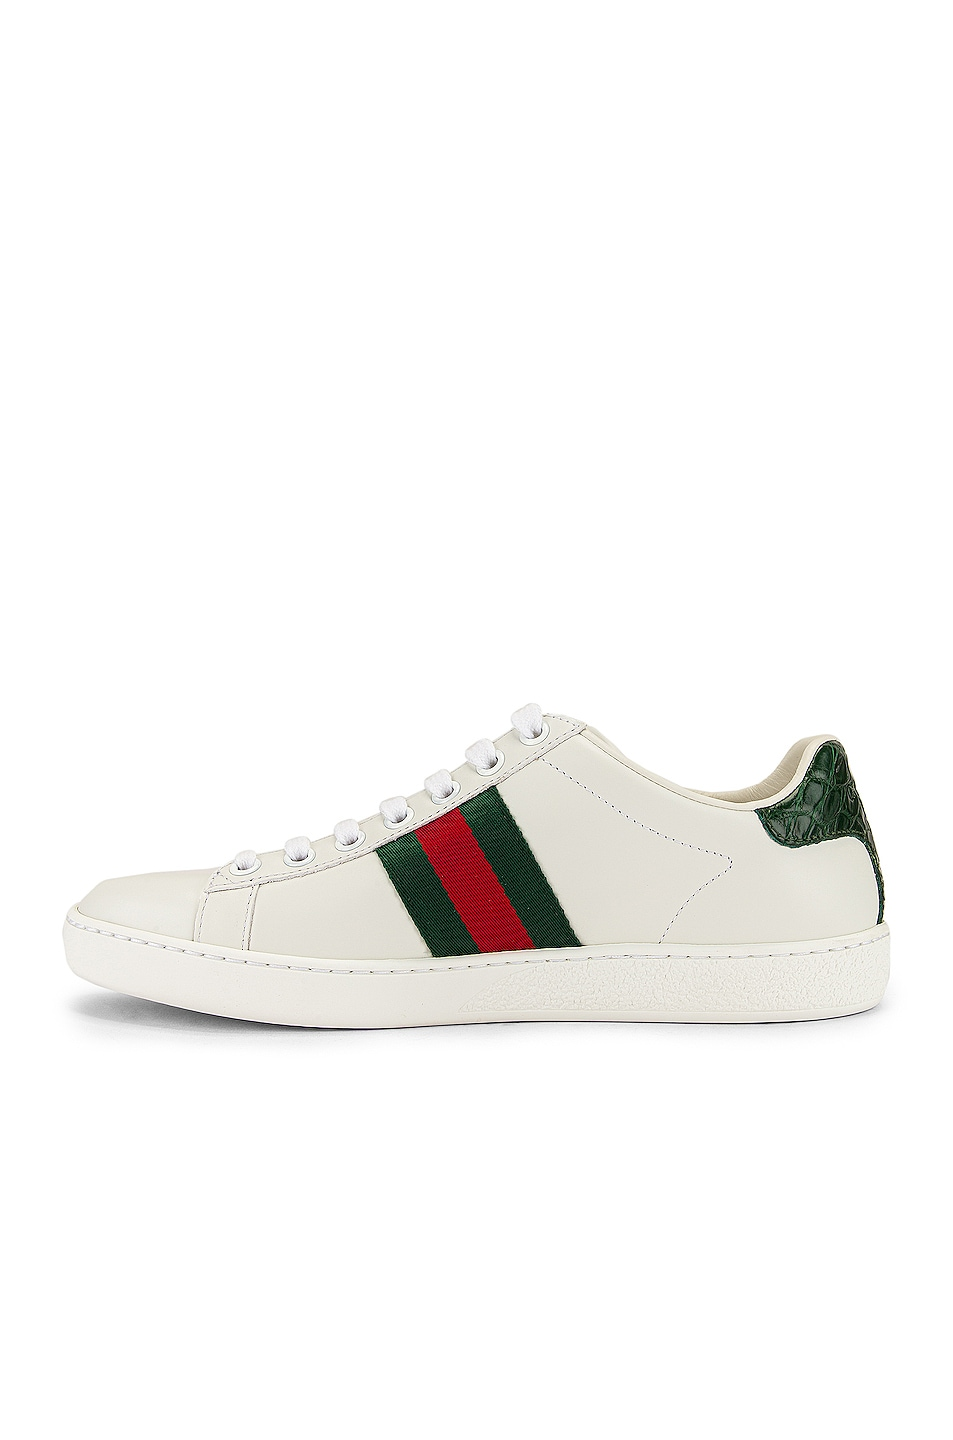 Image 5 of Gucci New Ace Basic Sneakers in White & Green